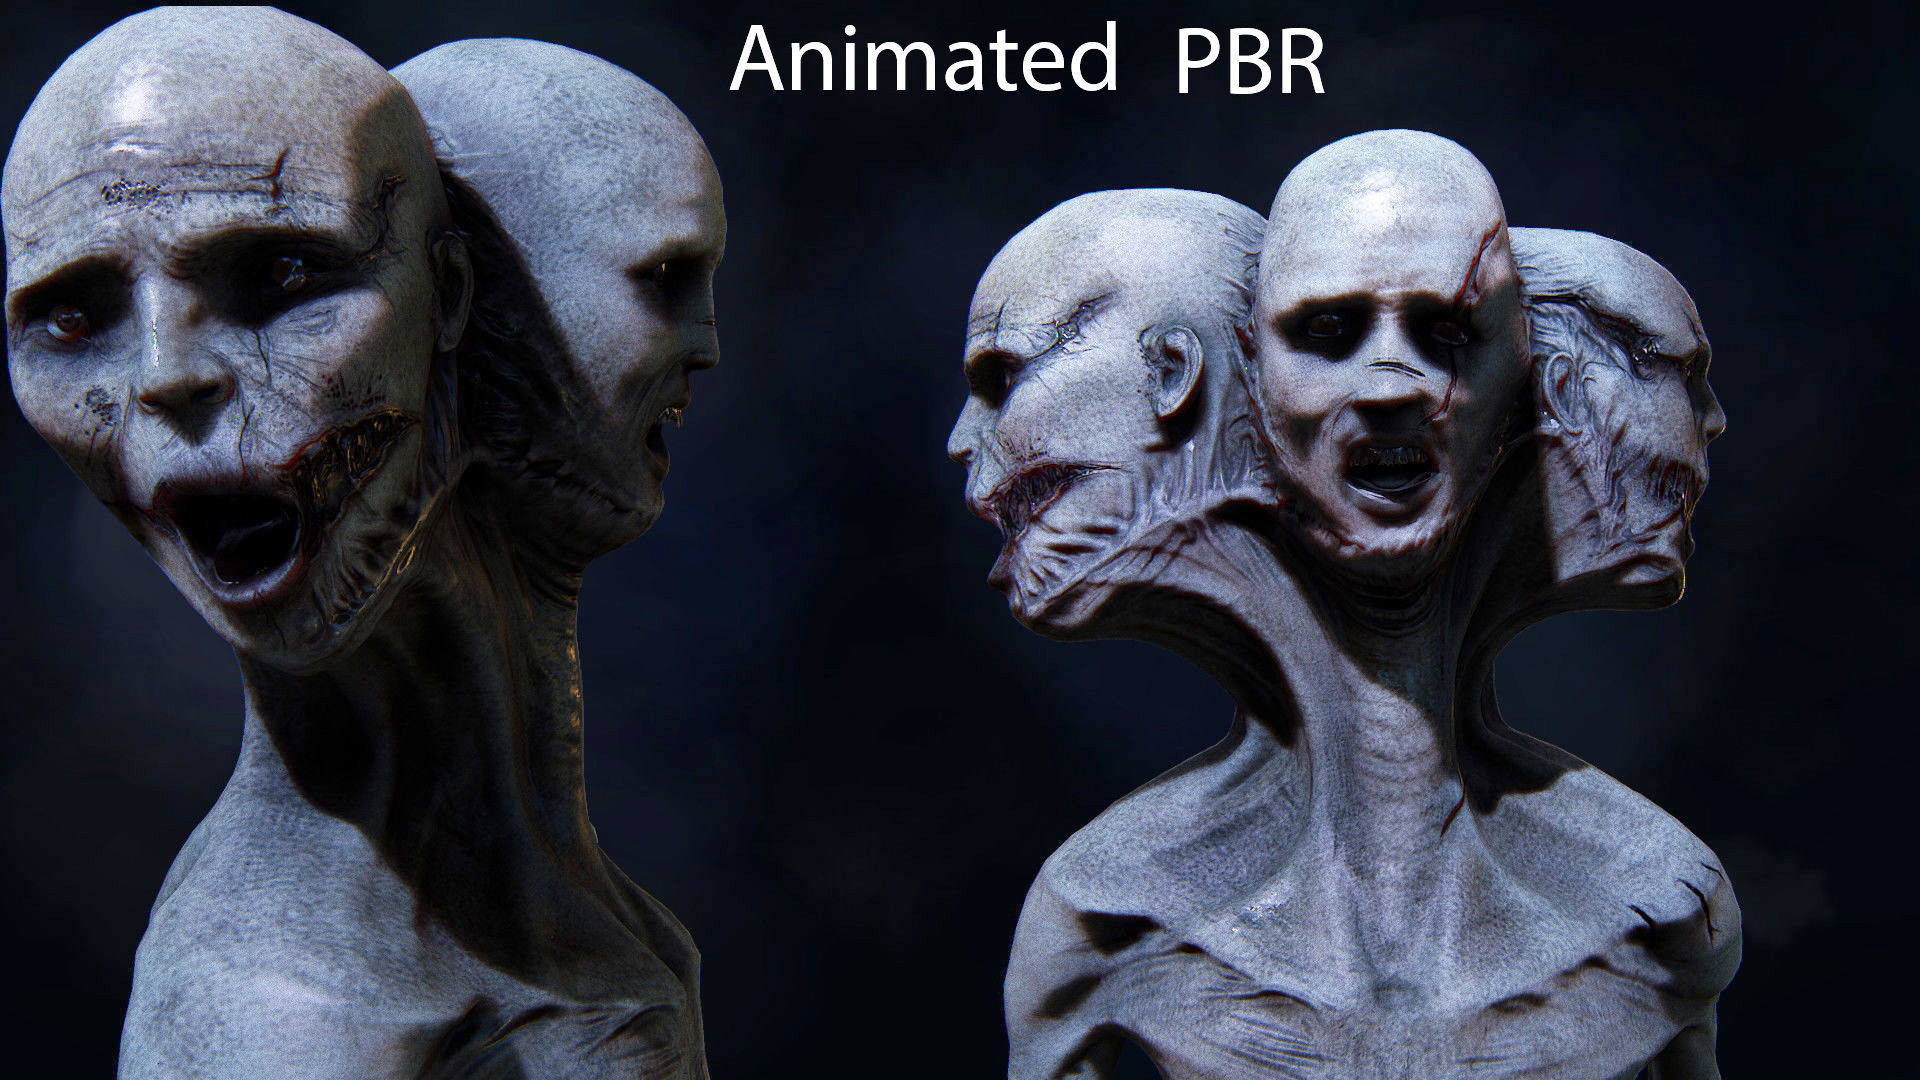 The three faces Monster ANimated Very creepy